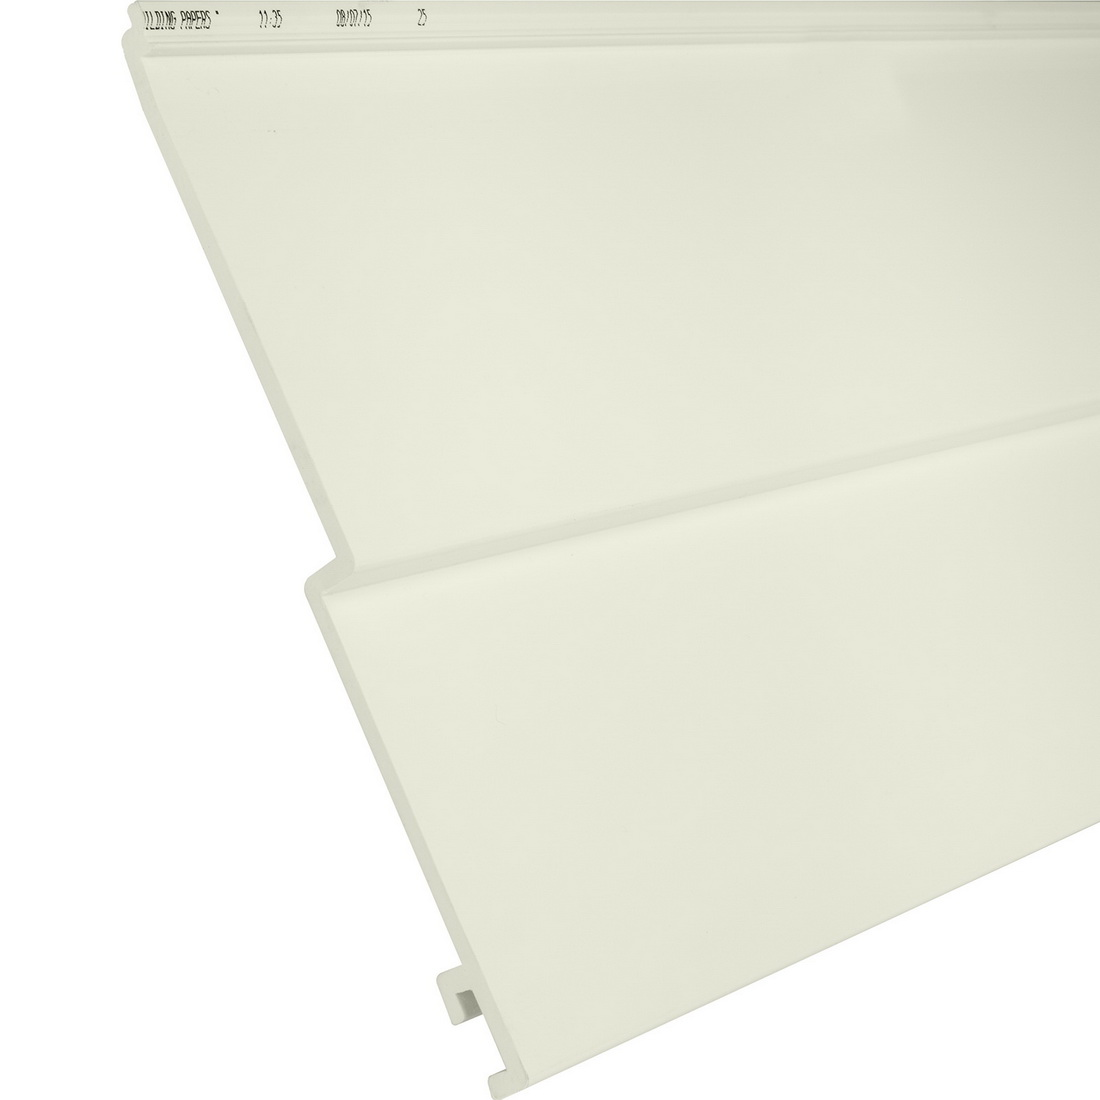 Palliside Traditional Weather Board 6.3 m x 260 mm Unplasticised PVC Calico FCTRADCAL6.3